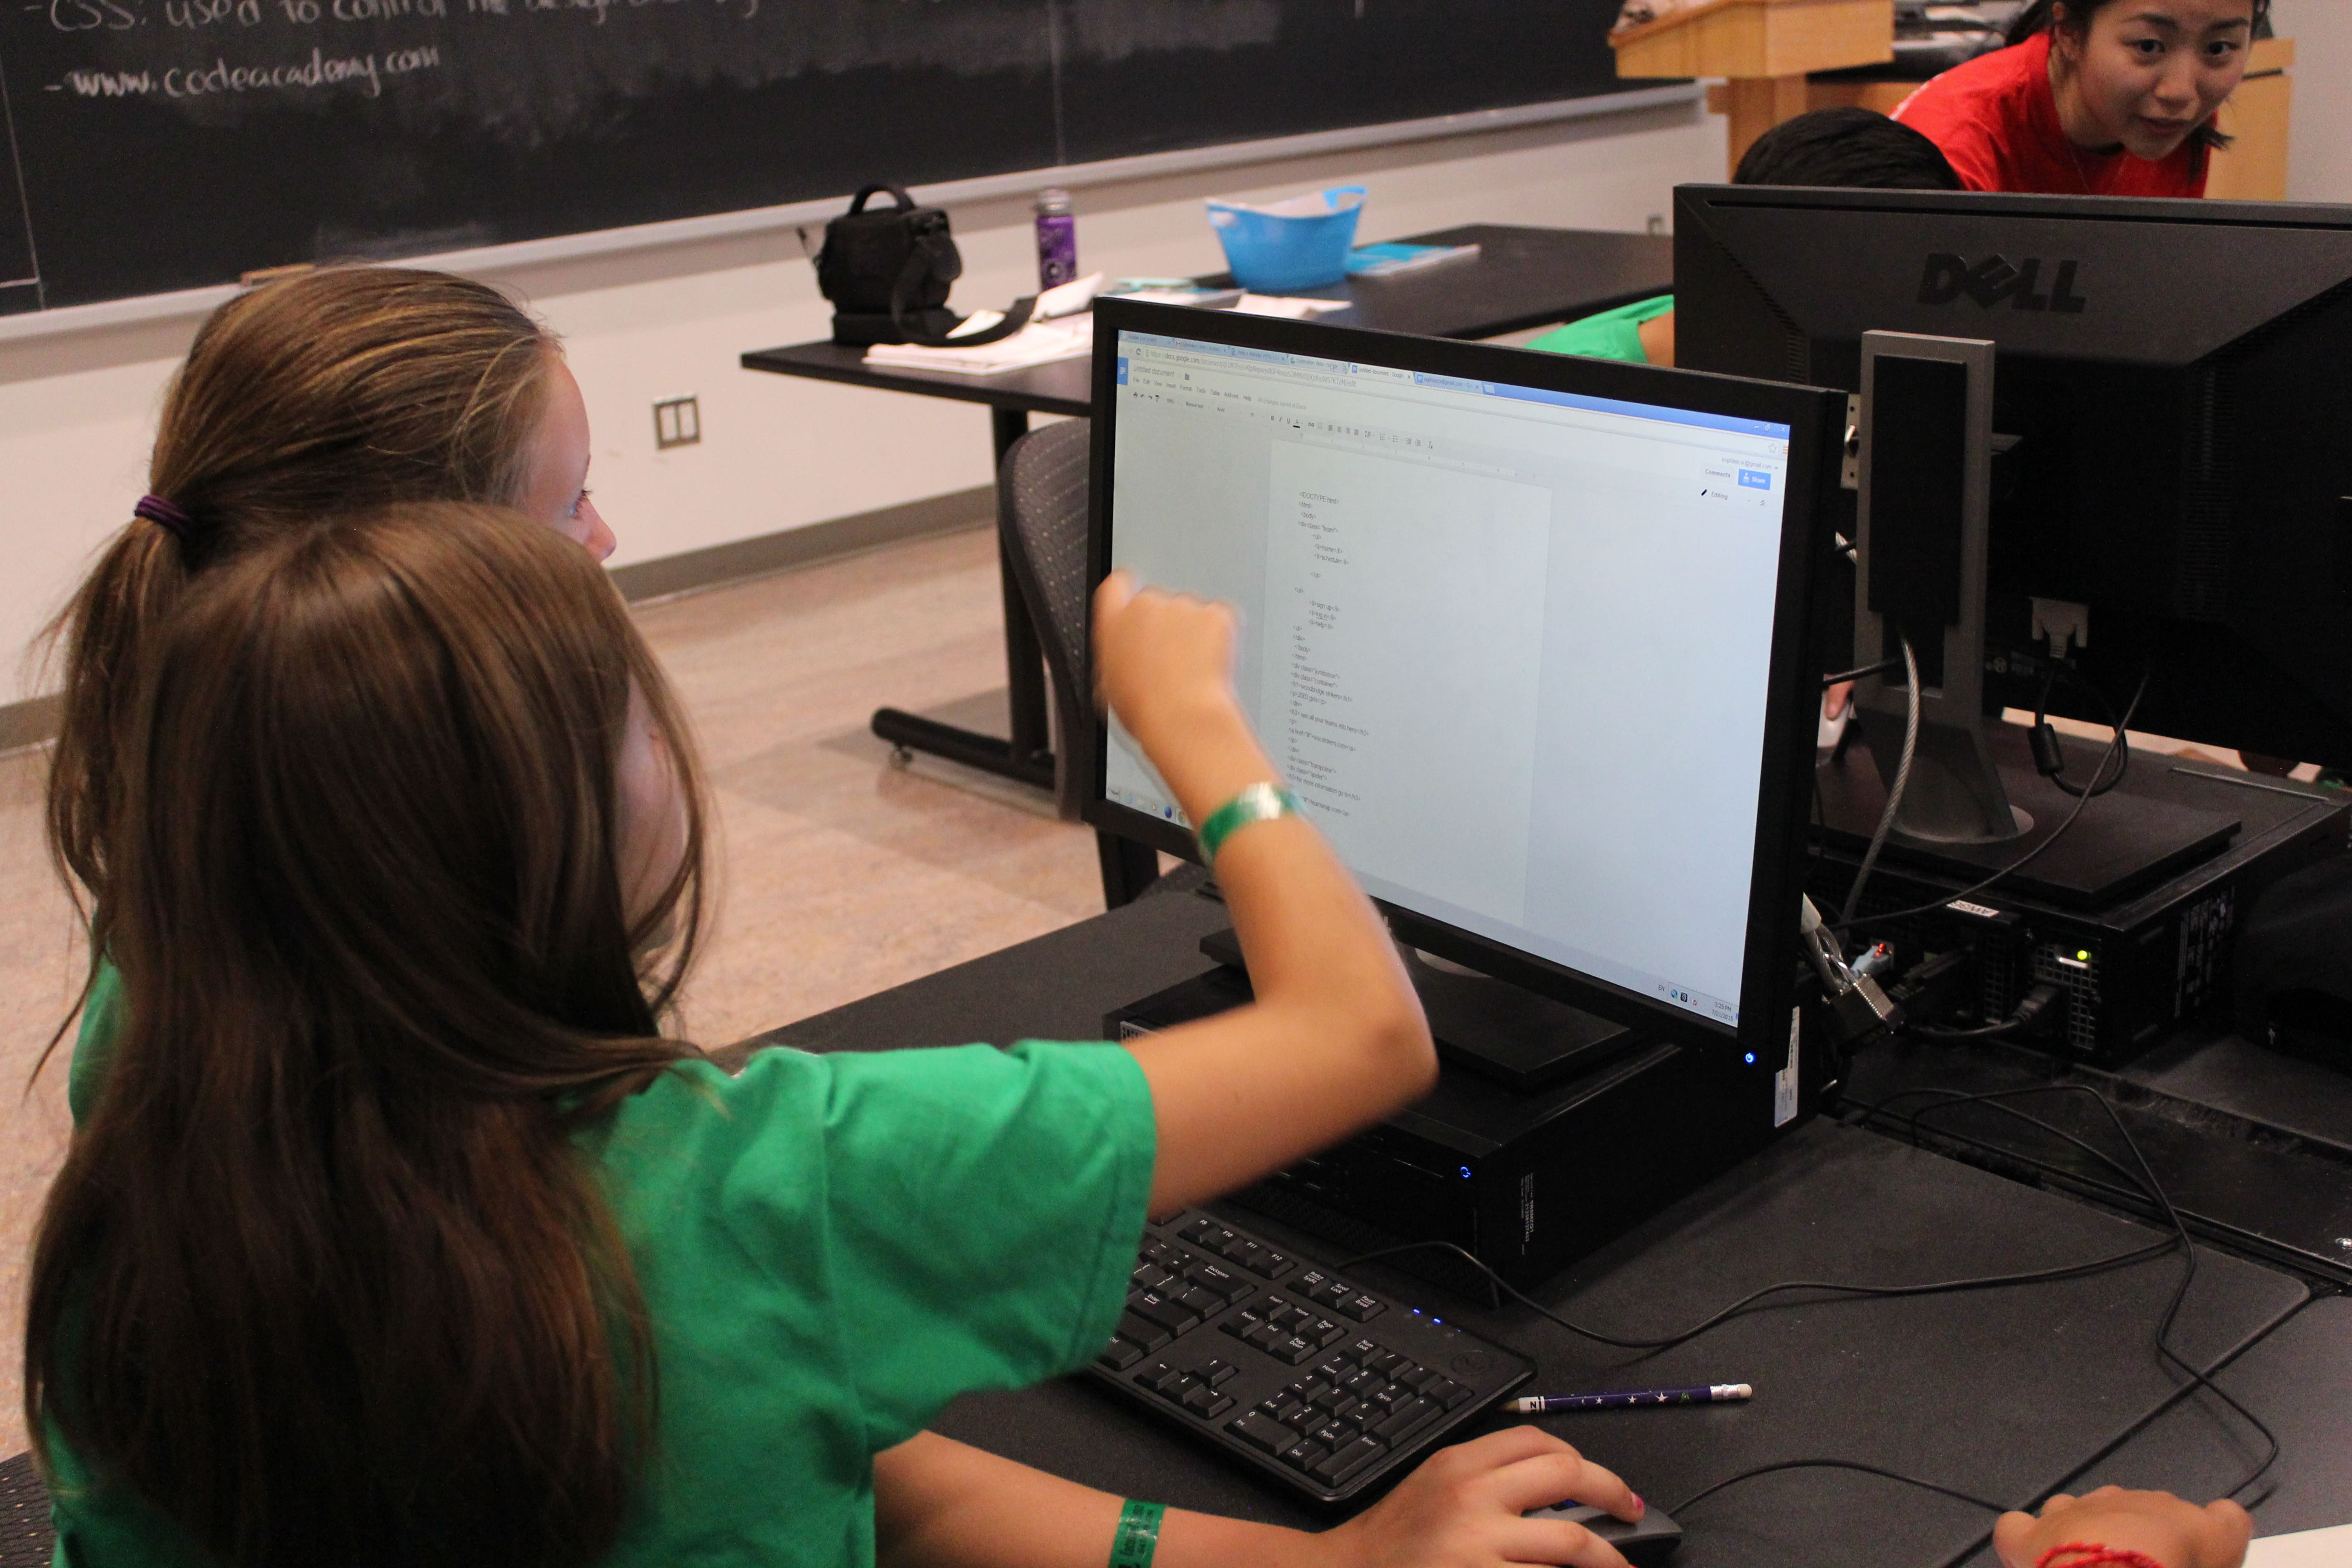 Young girls on computer in classroom.